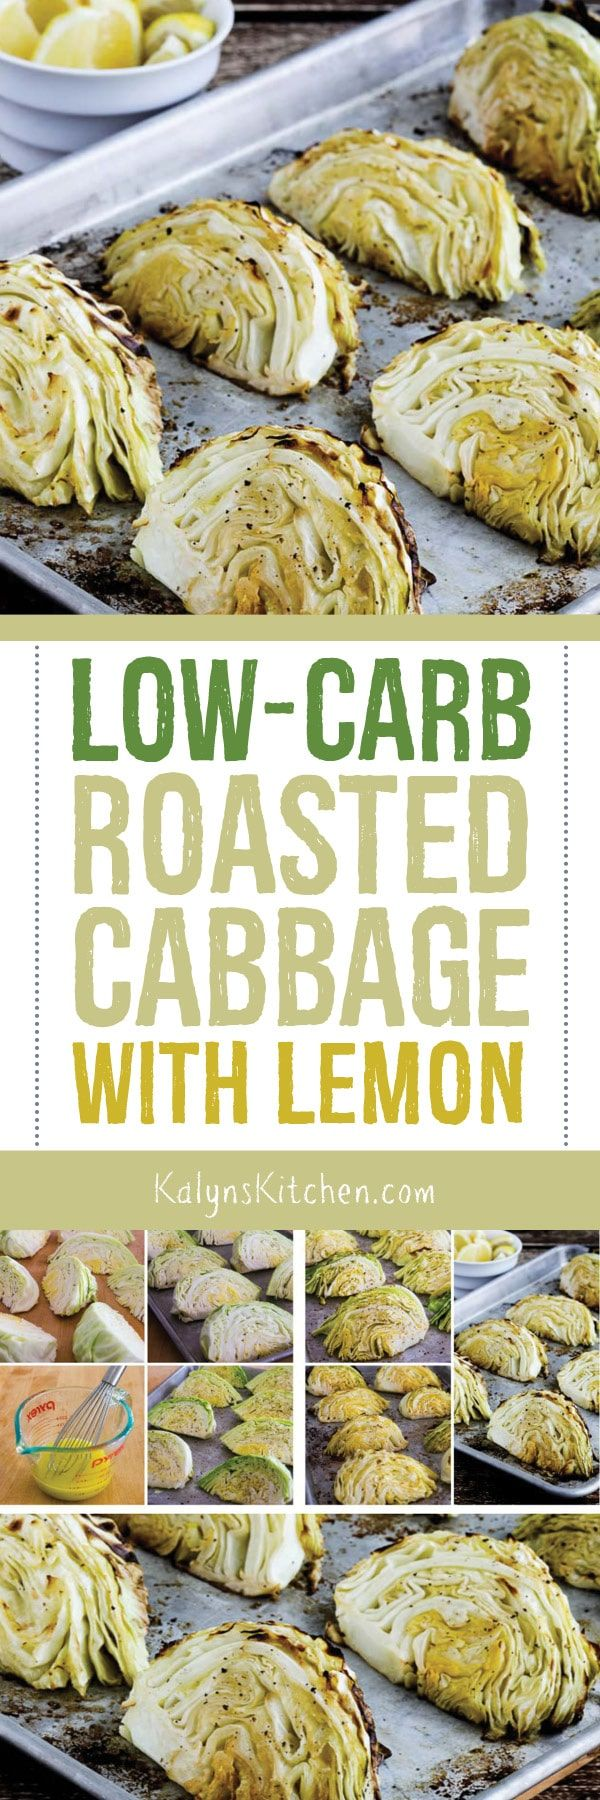 Low-Carb Roasted Cabbage with Lemon is an amazing low-carb side for any kind of protein, and I think this is the perfect side for corned beef! Even if you think you don't like cabbage, this might surprise you, and the recipe is also Keto, gluten-free, dairy-free, Paleo, South Beach Diet friendly, and Vegan. [found on KalynsKitchen.com.] #CabbageRecipe #LowCarbRoastedCabbage #RoastedCabbagewithlemon #LowCarbRoastedCabbagewithLemon #LowCarbCabbageRecipe #CabbageSideDish